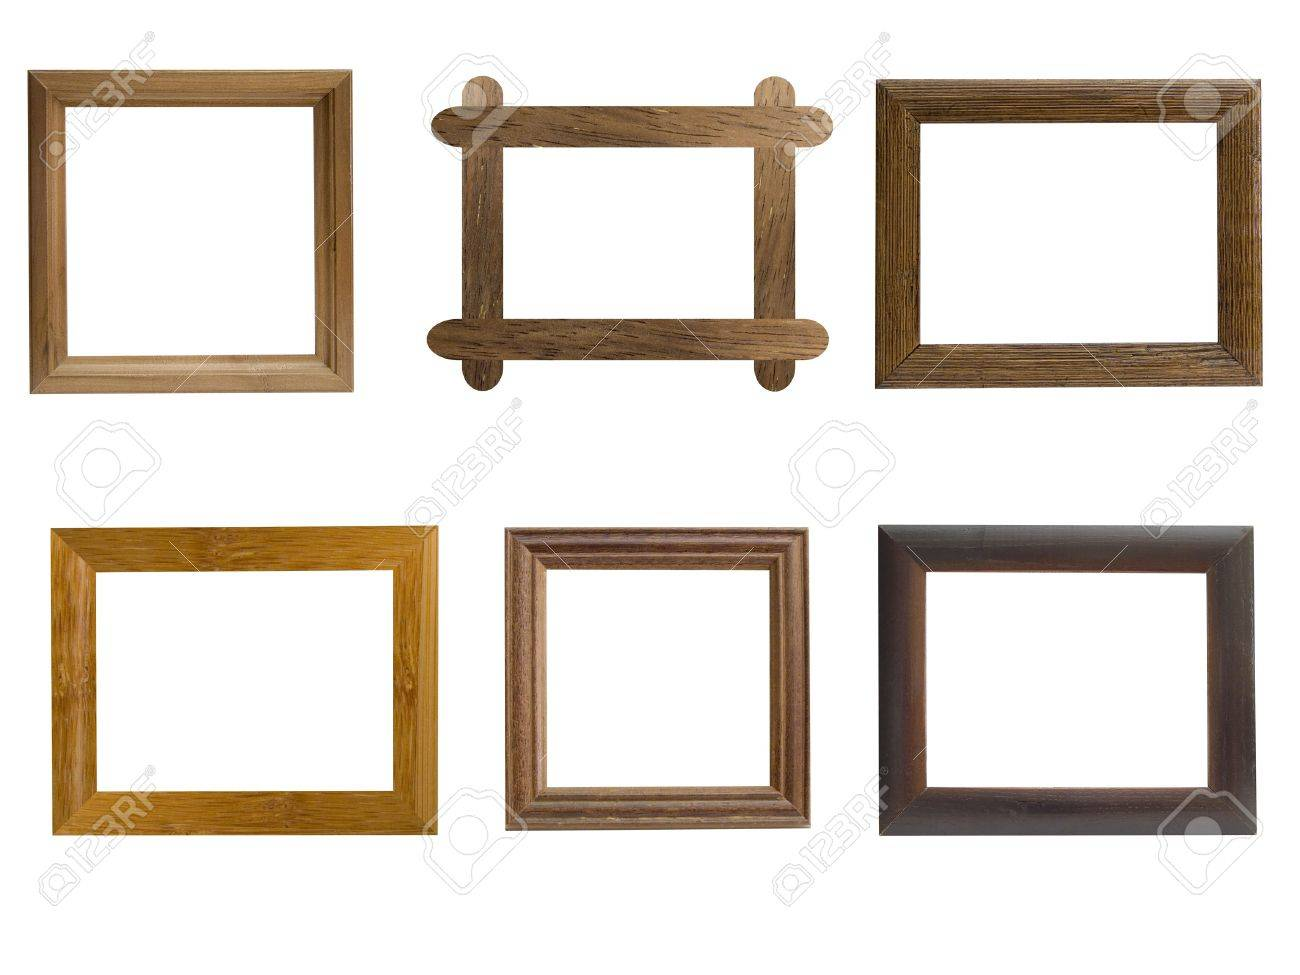 harmony kingdom picturesque collection 4 tile medium frame frames from natural wood on a white background - Natural Wood Picture Frames